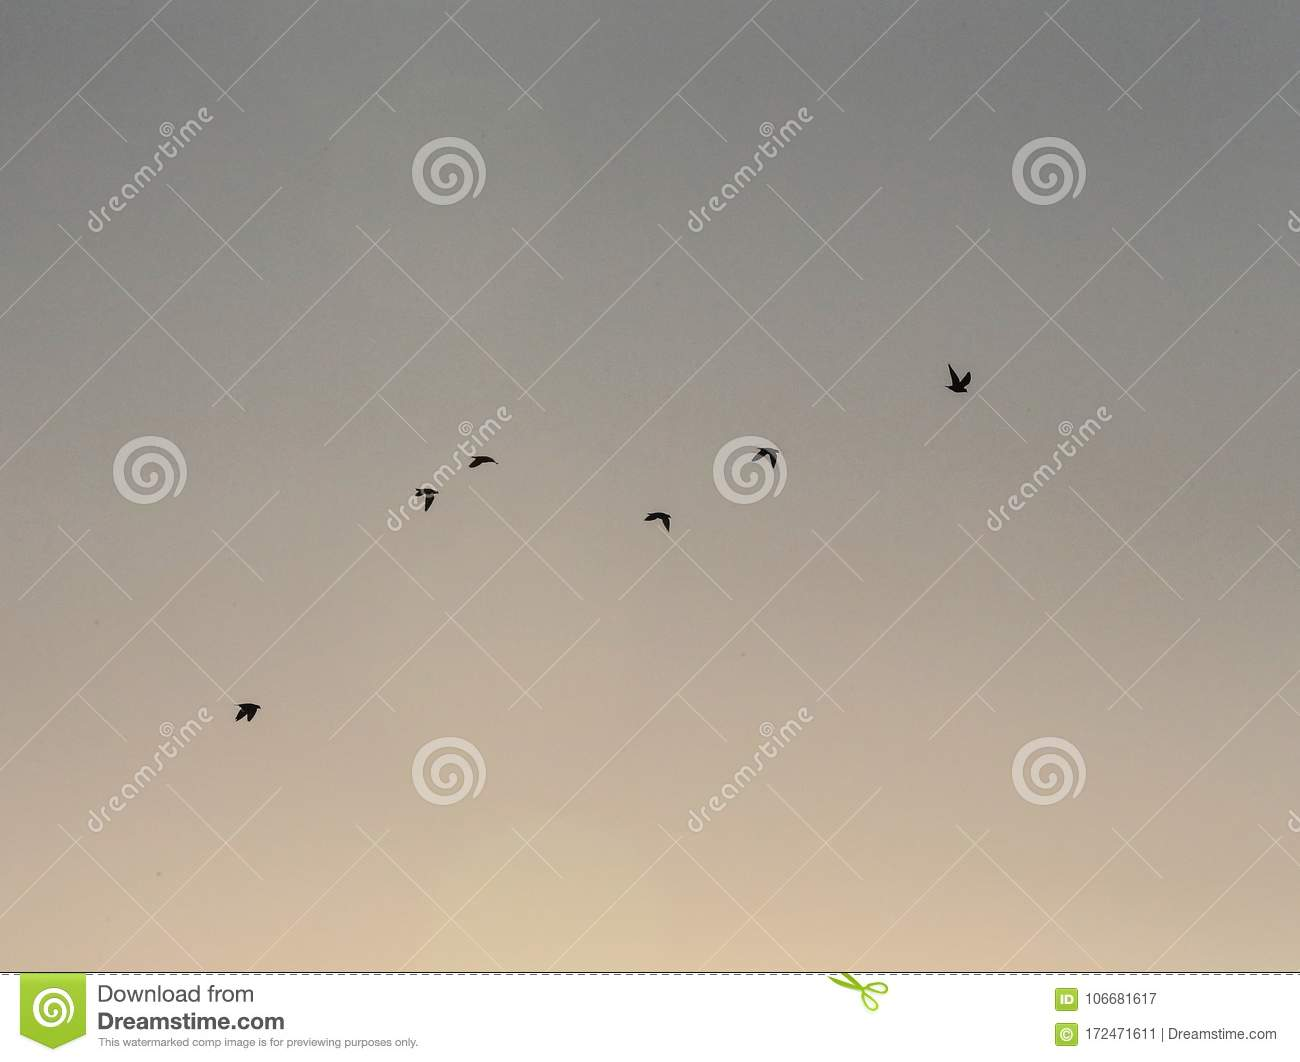 A group of dove flew across the sky